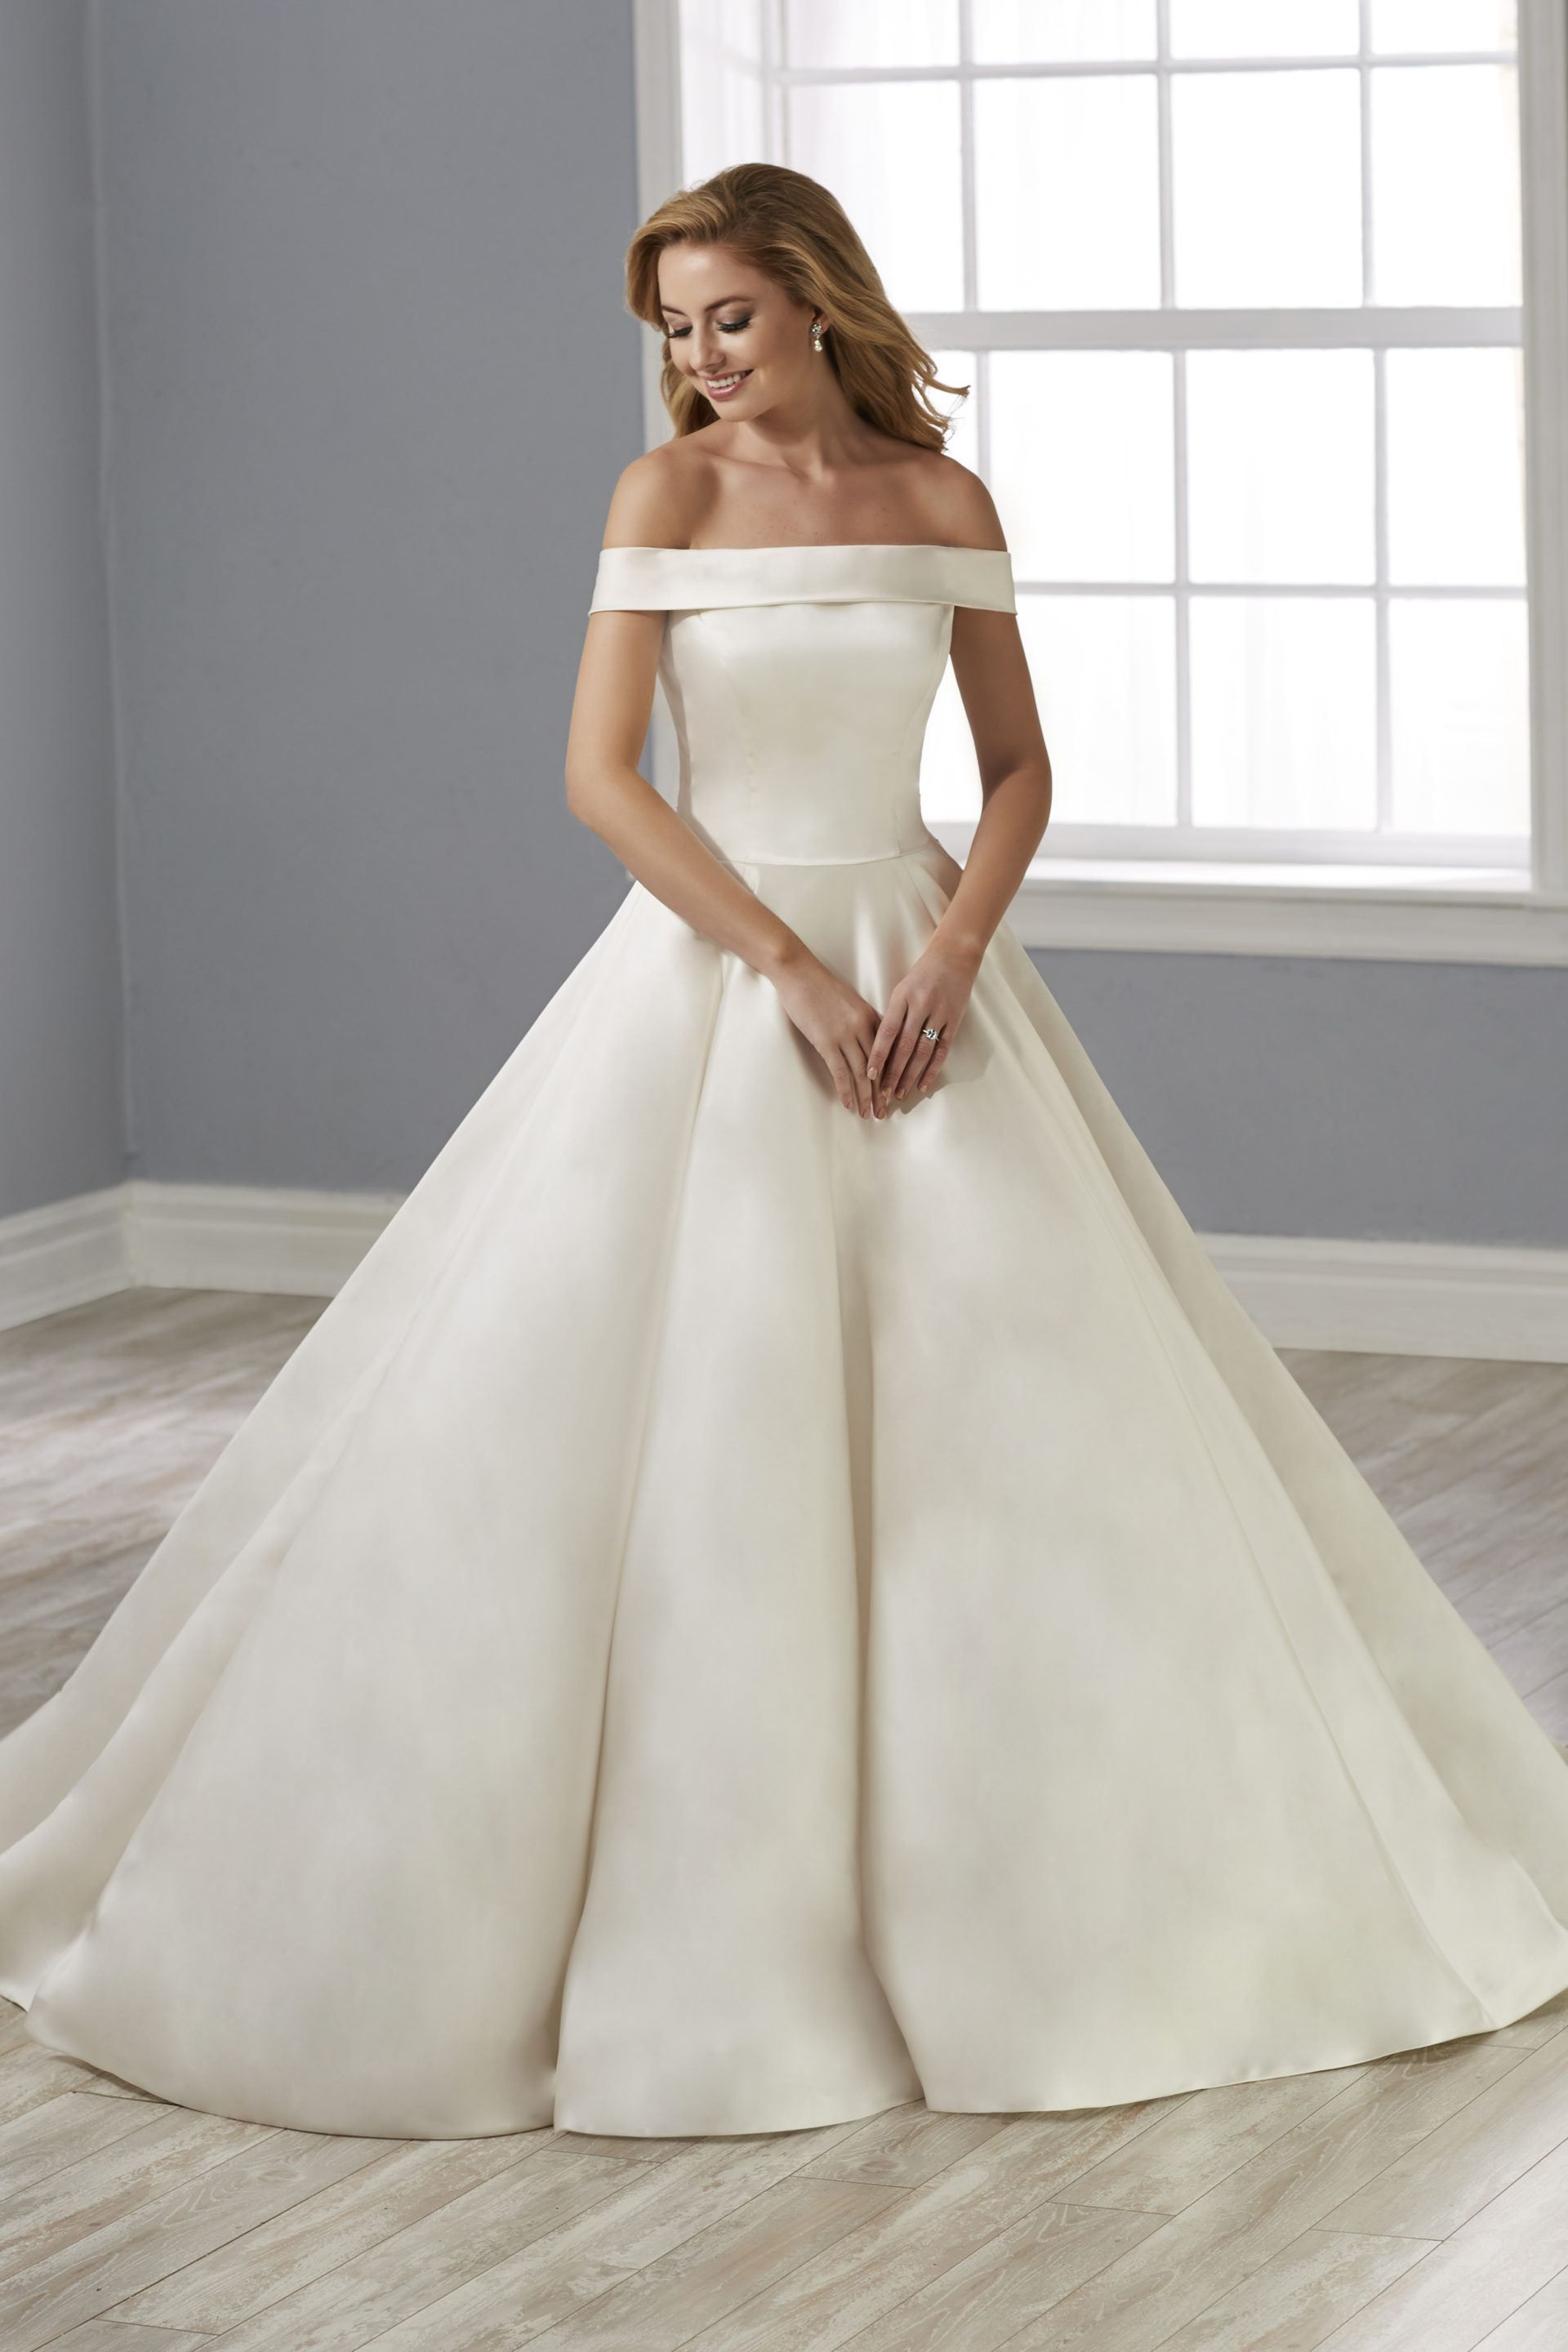 Novia Collection By House Of Wu 38020 Off The Shoulder Bridal Gown In 2021 Silk Wedding Dress Ballgown Wedding Dresses Satin Satin Wedding Gown [ 2880 x 1920 Pixel ]